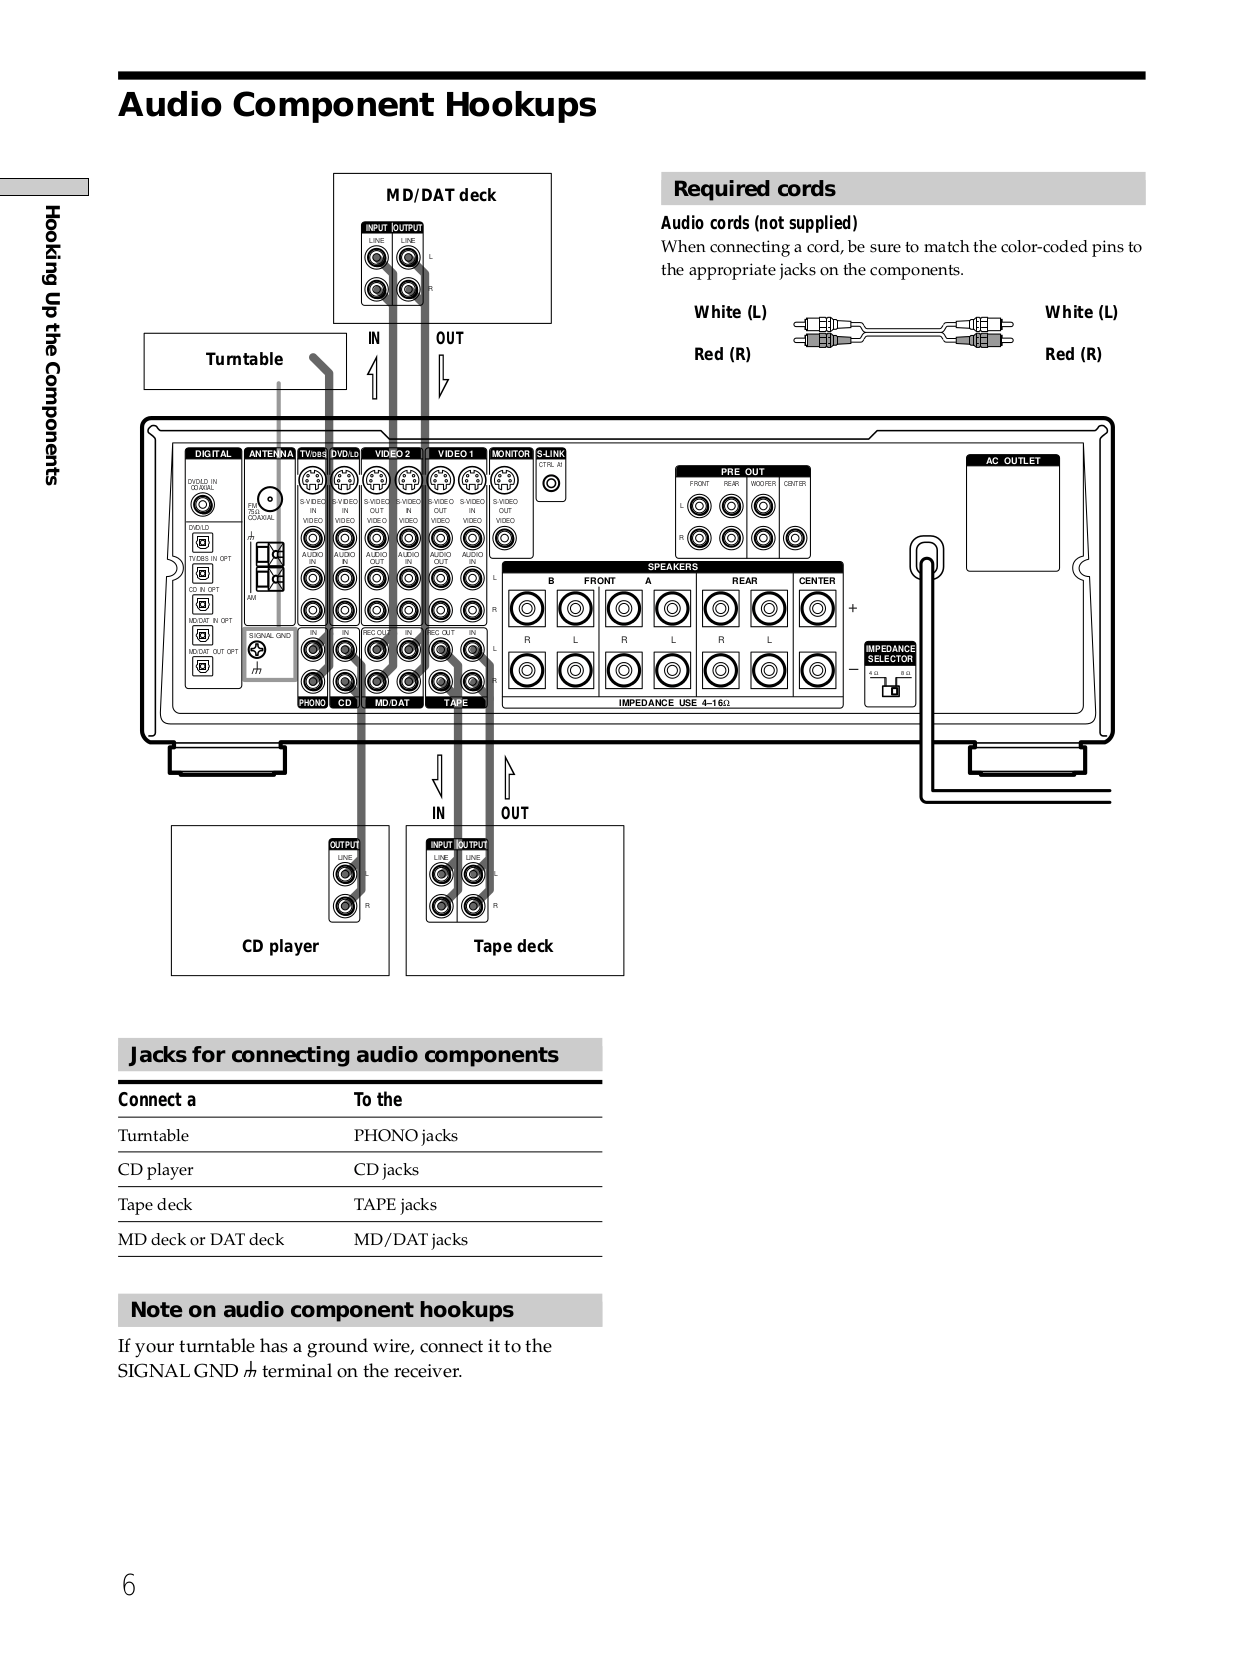 PDF manual for Sony Receiver STR-DA50ES